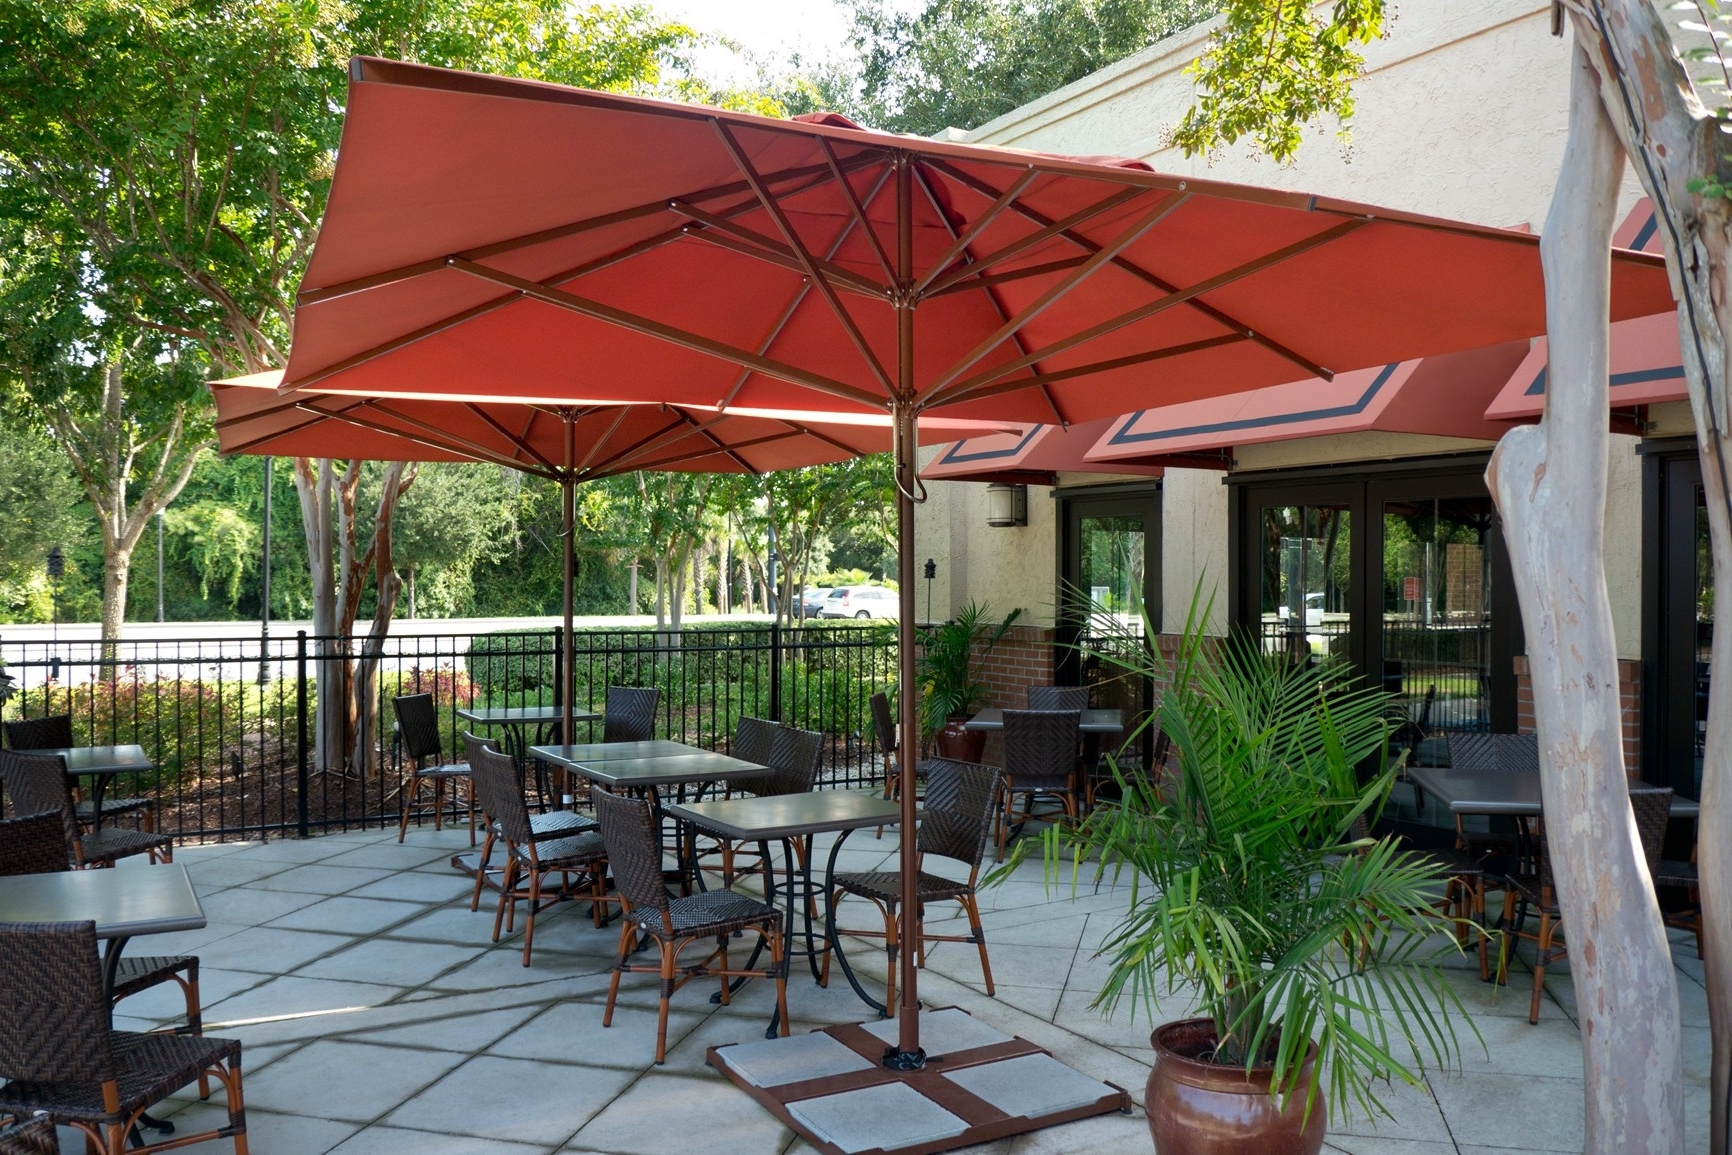 Vintage Patio Umbrella Best Of Pagoda Patio Umbrella Clearance Sale With Well Known Vintage Patio Umbrellas For Sale (View 14 of 20)